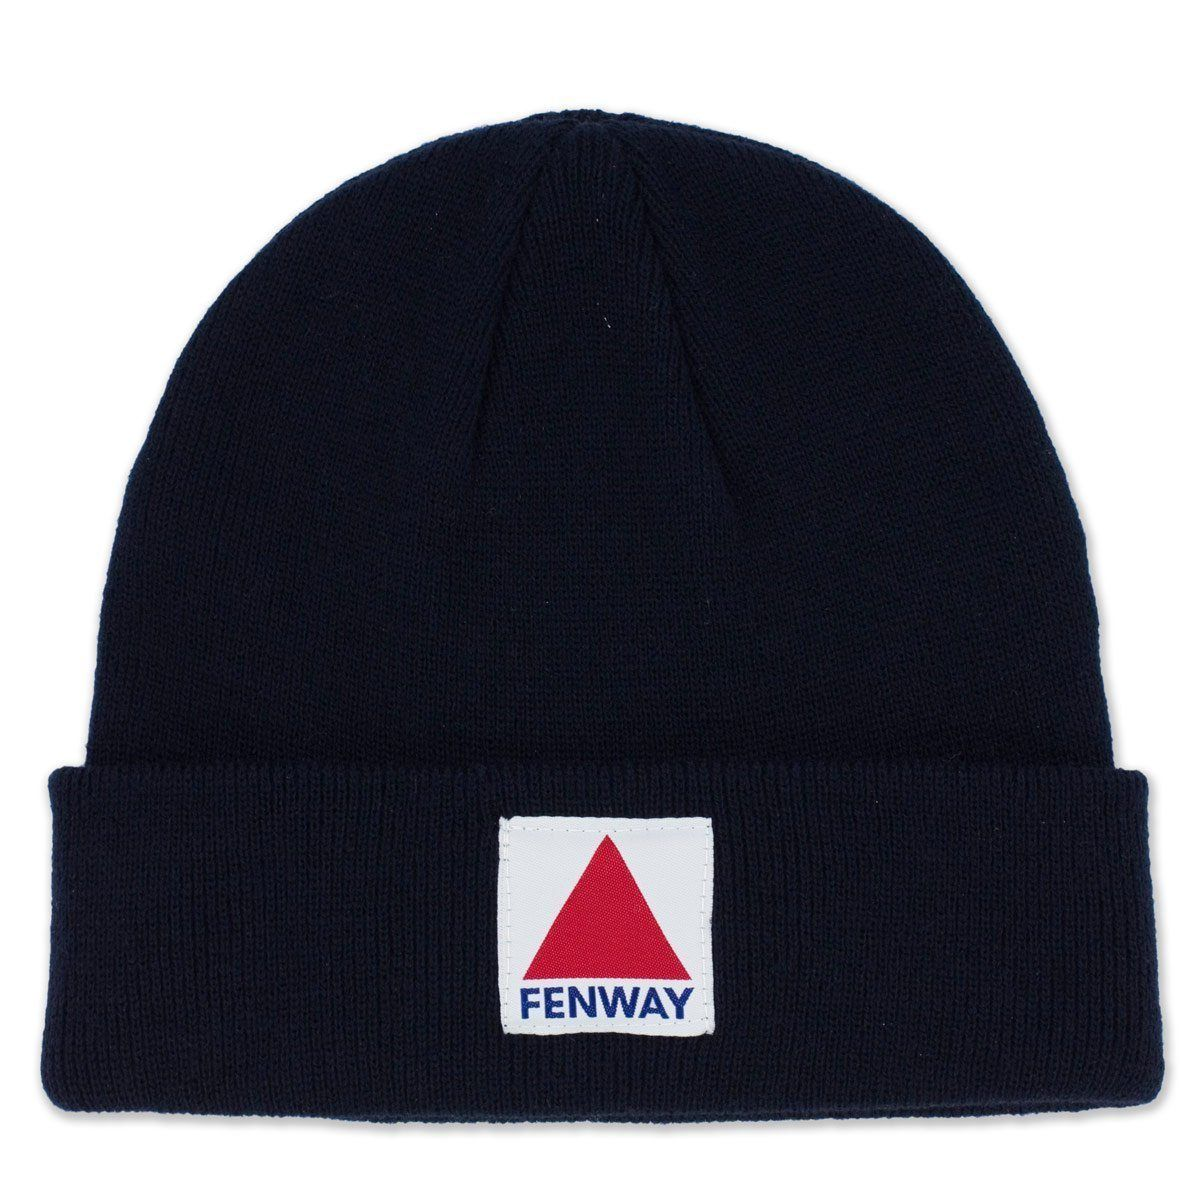 8e2629e7ba6952 Fenway Label Beantown Beanie | Products | Beanie, Winter headwear ...